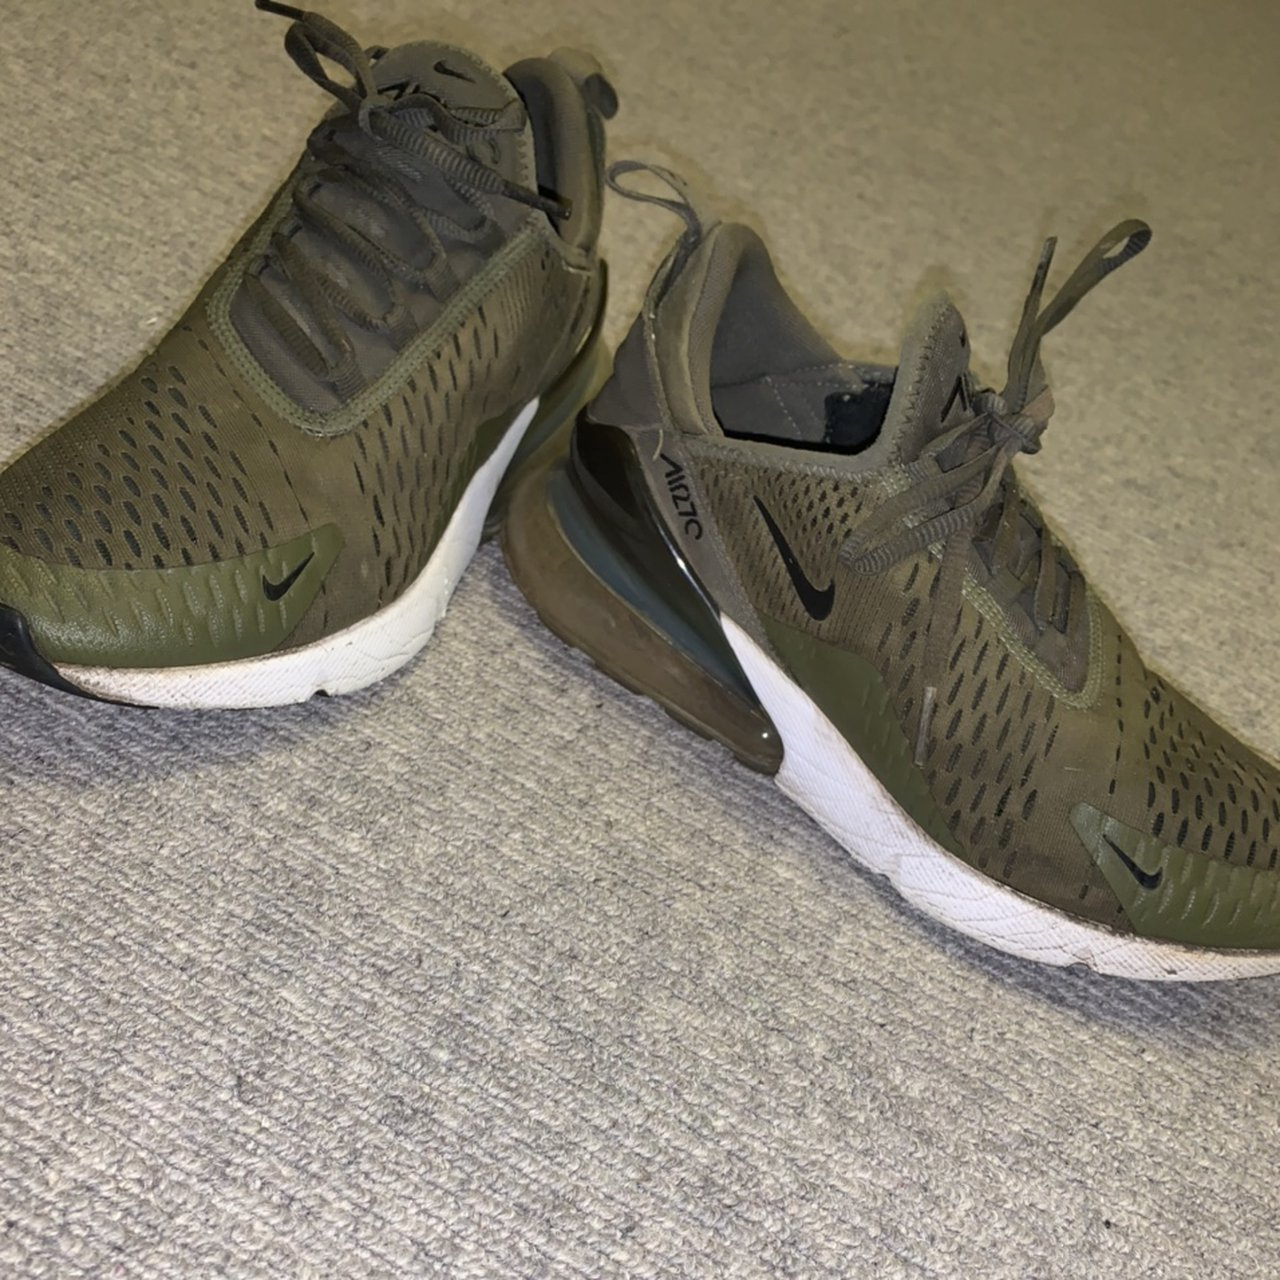 Nike 270 olive green running trainers